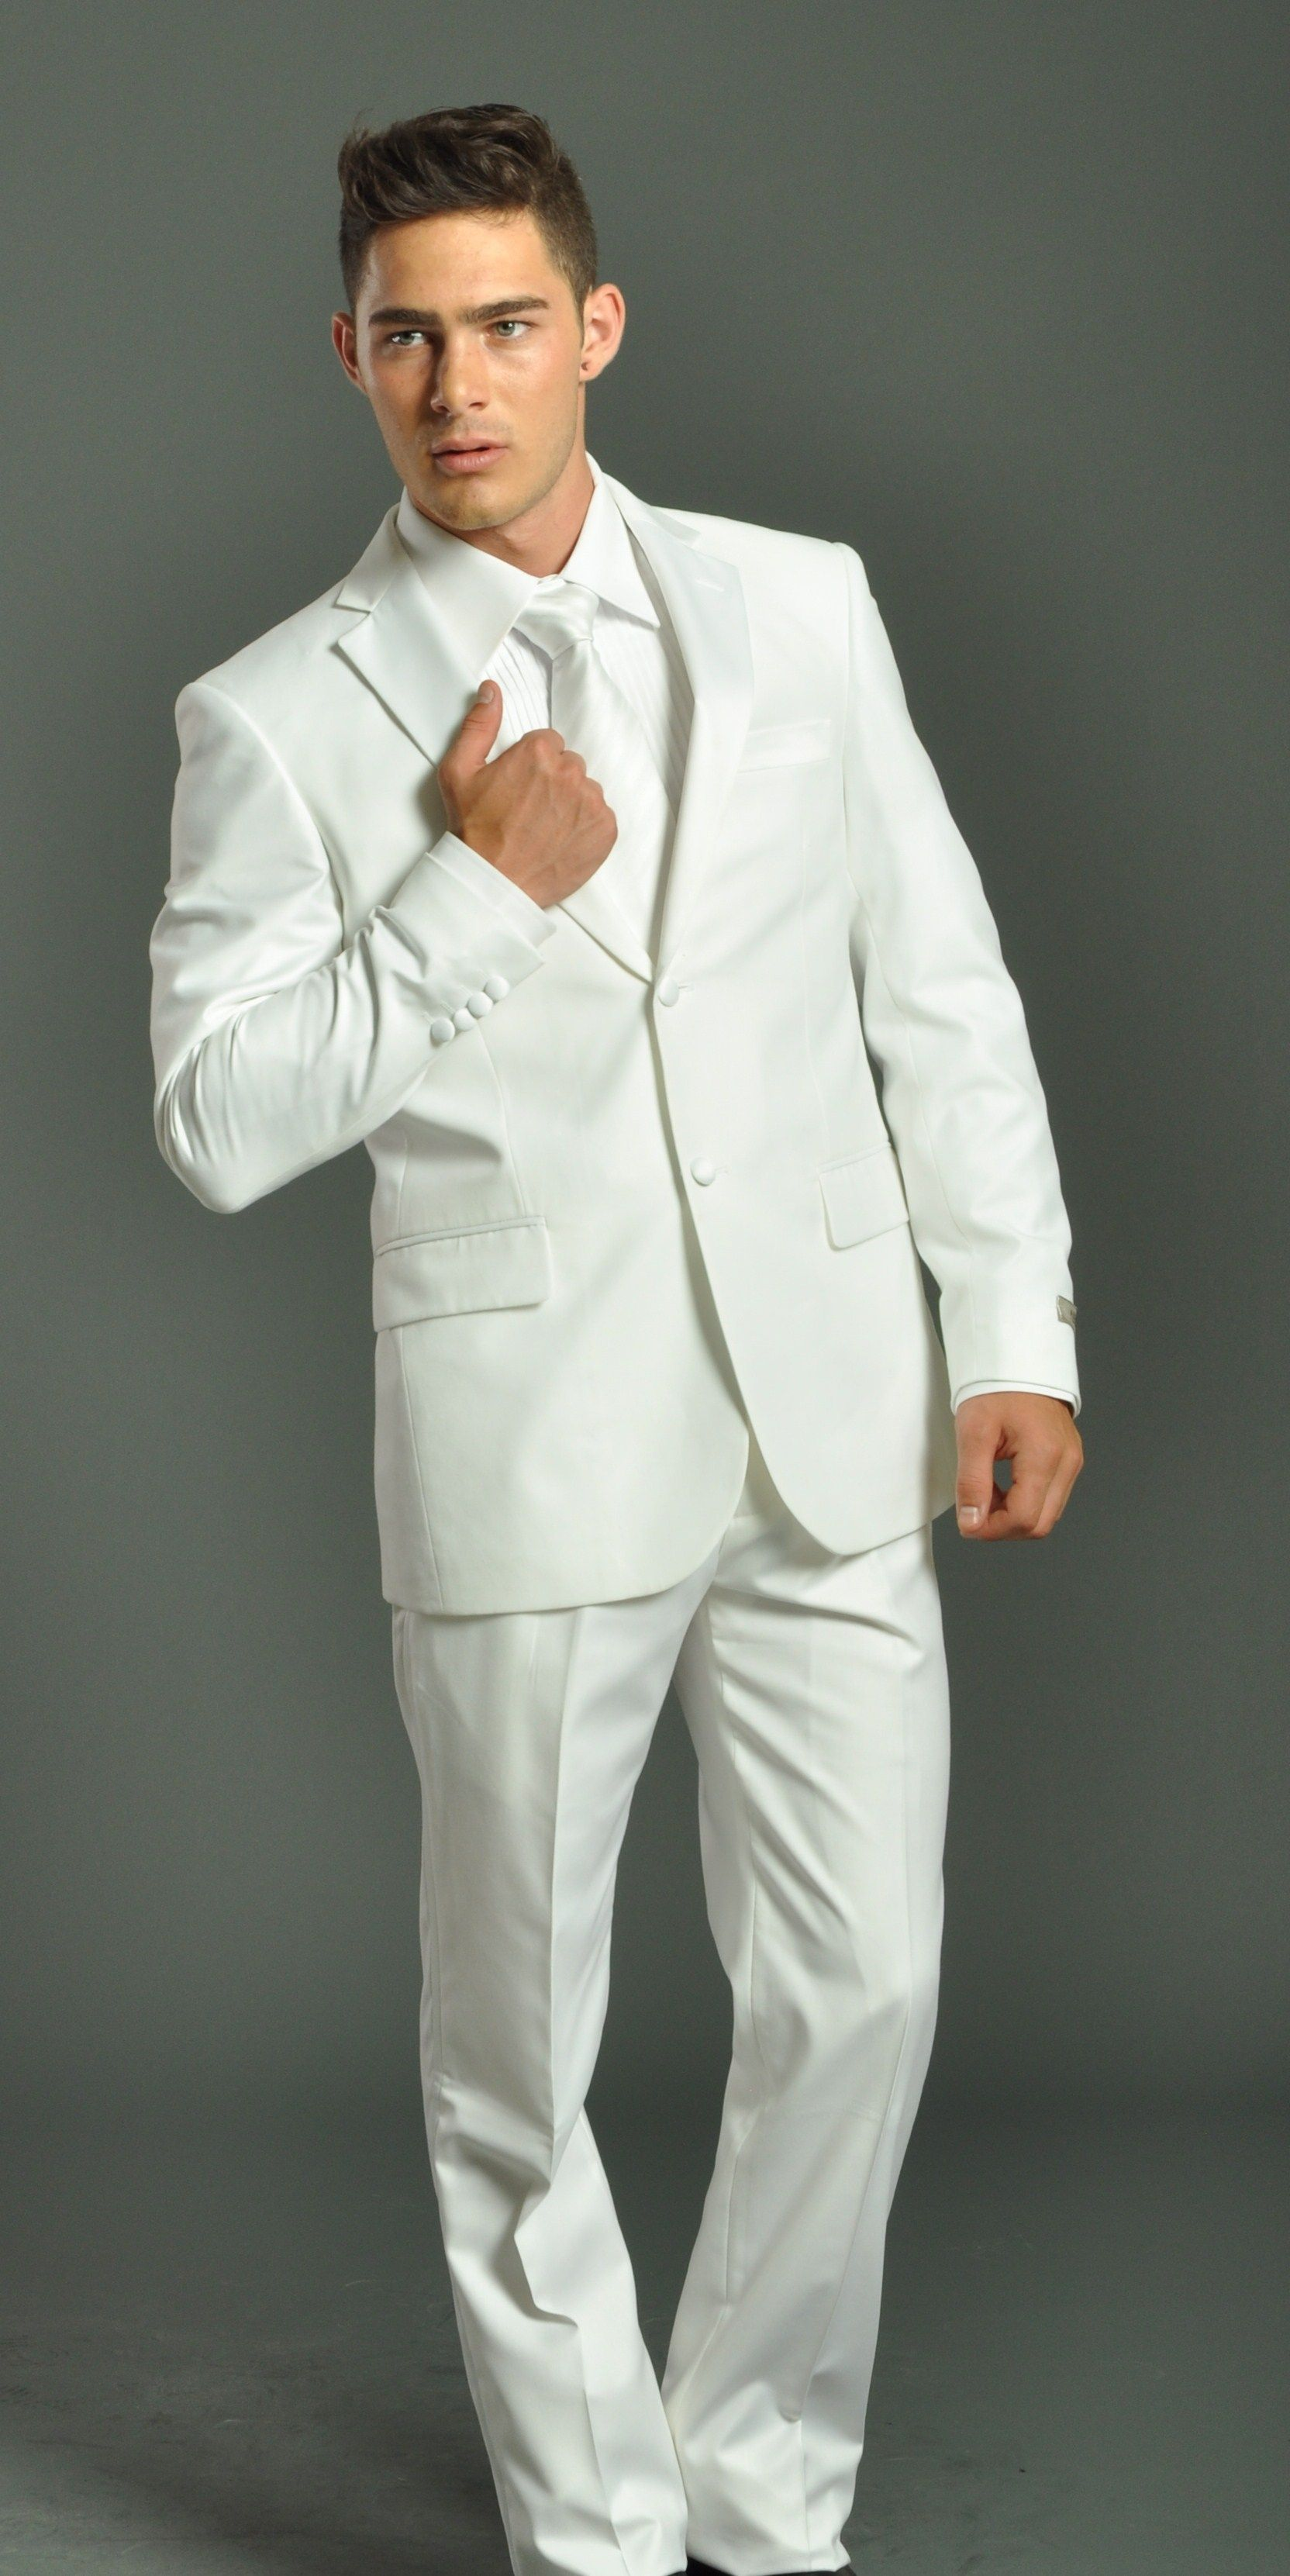 men & women in white suit | Men's Two Button Solid White Tuxedo ...